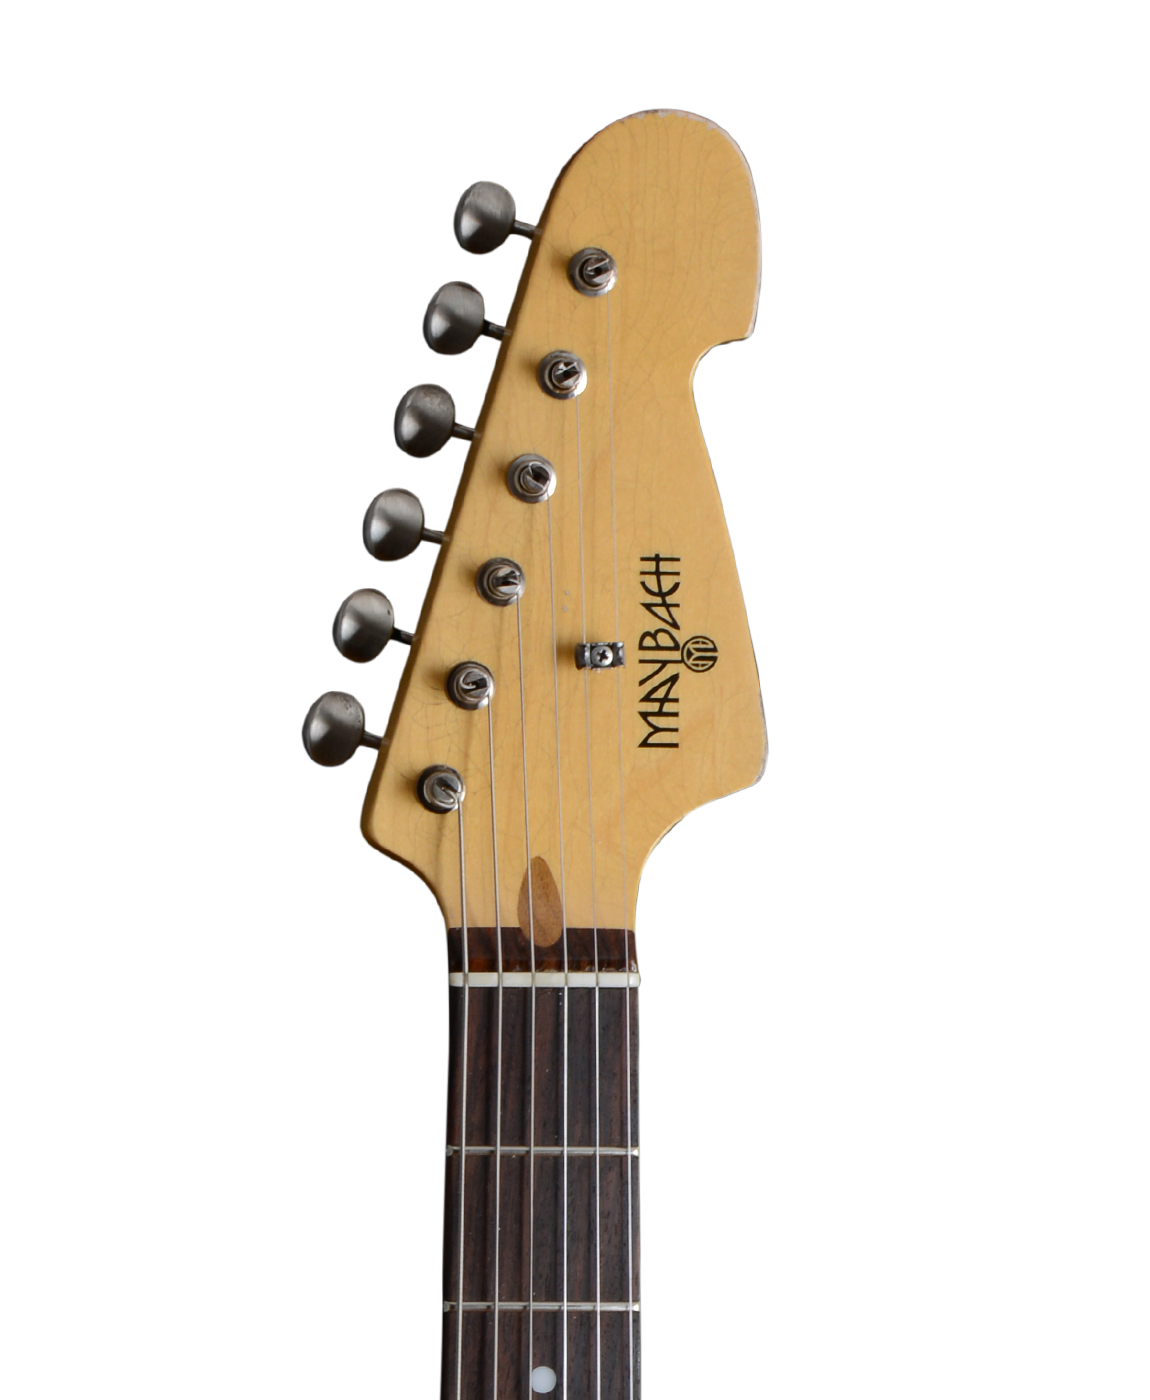 maybach-stradovari-s61-olympic-white-aged-headstock